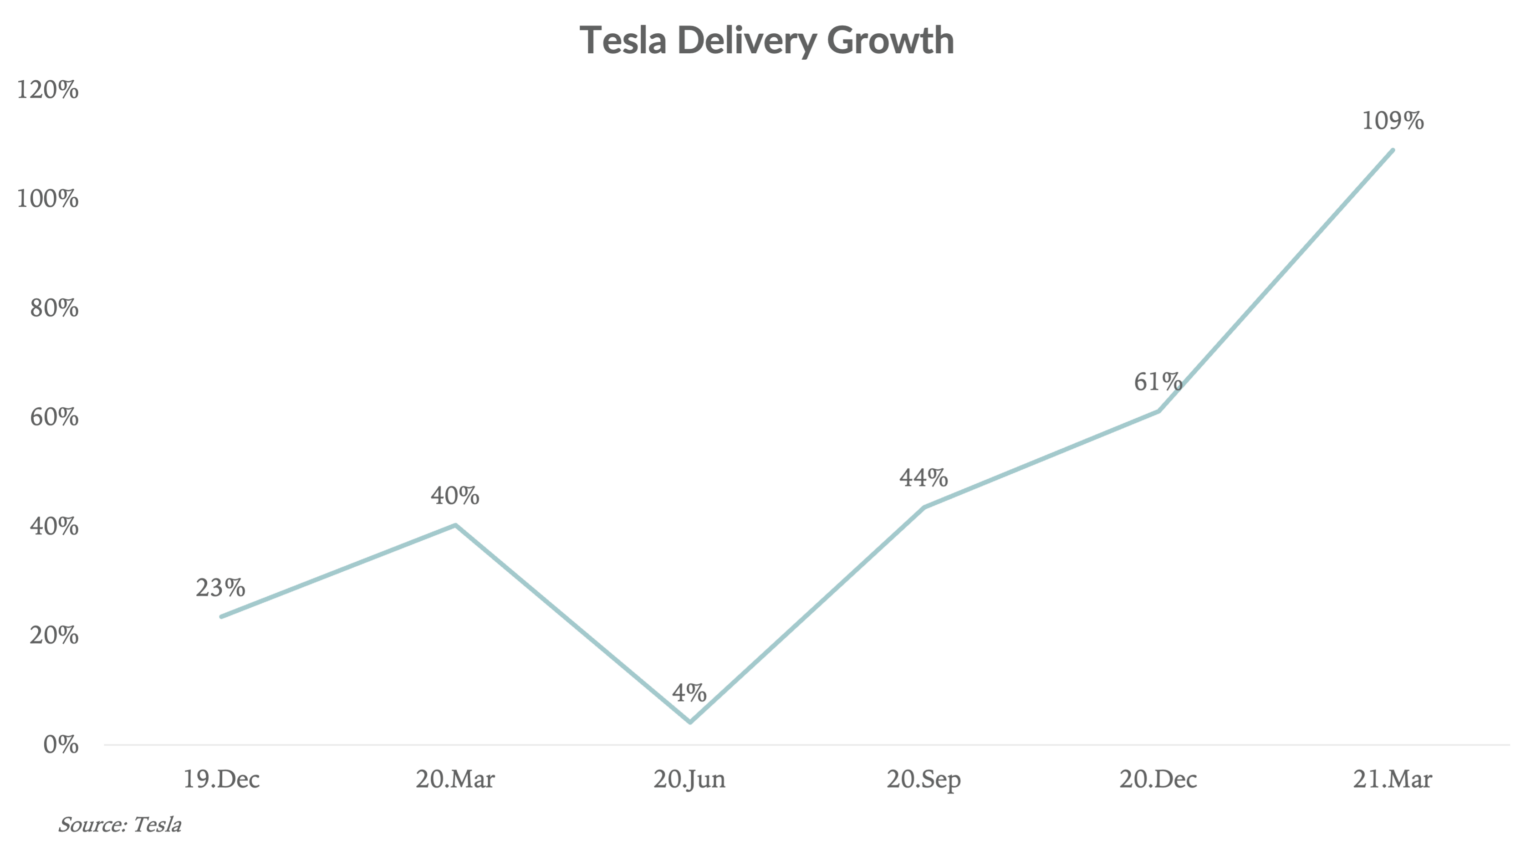 Tesla-Delivery-Growth-Q1-2021